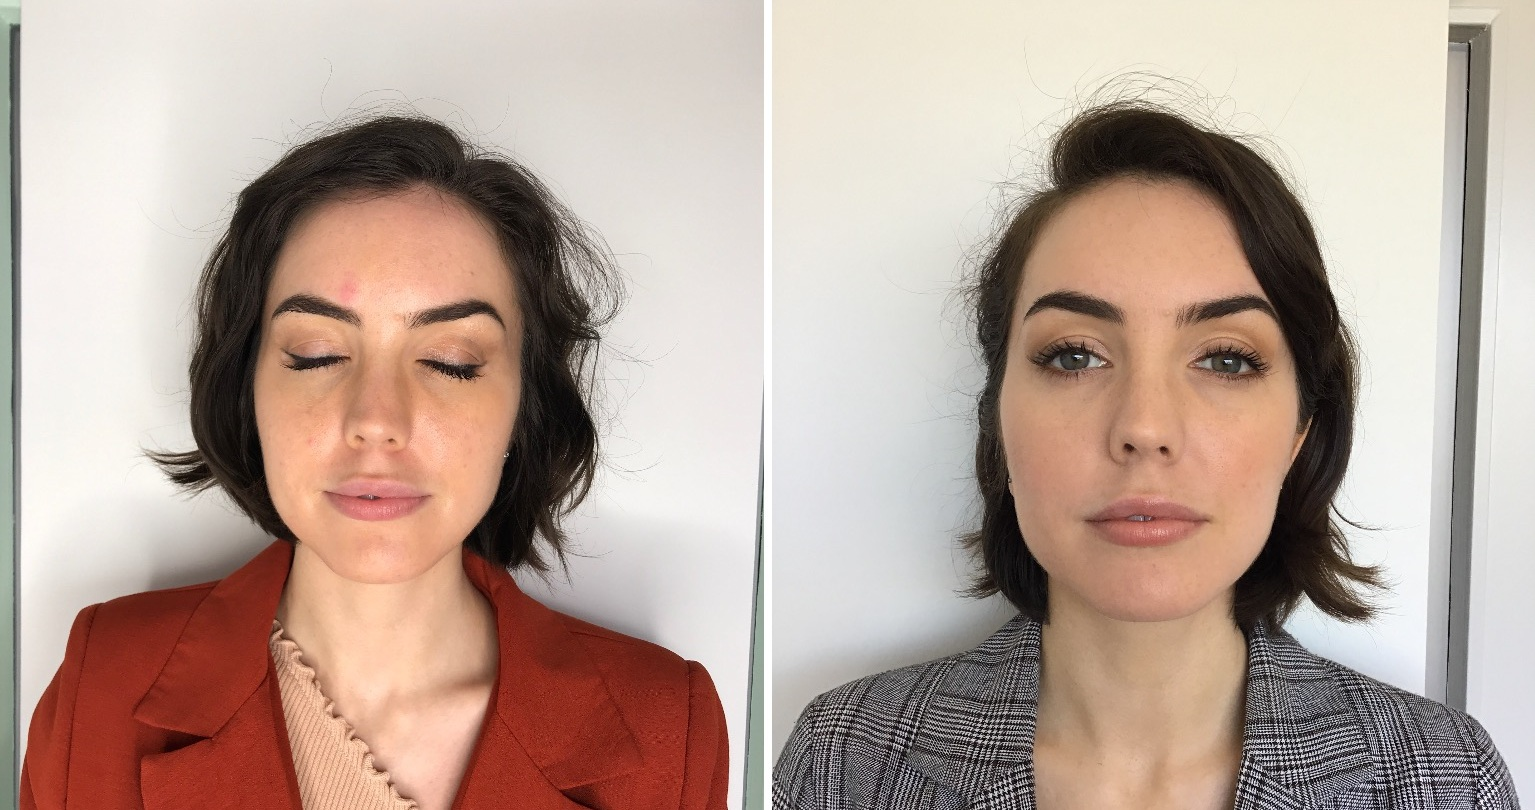 Before and after TMJ treatment: my masseter jaw muscles are less swollen and inflamed.